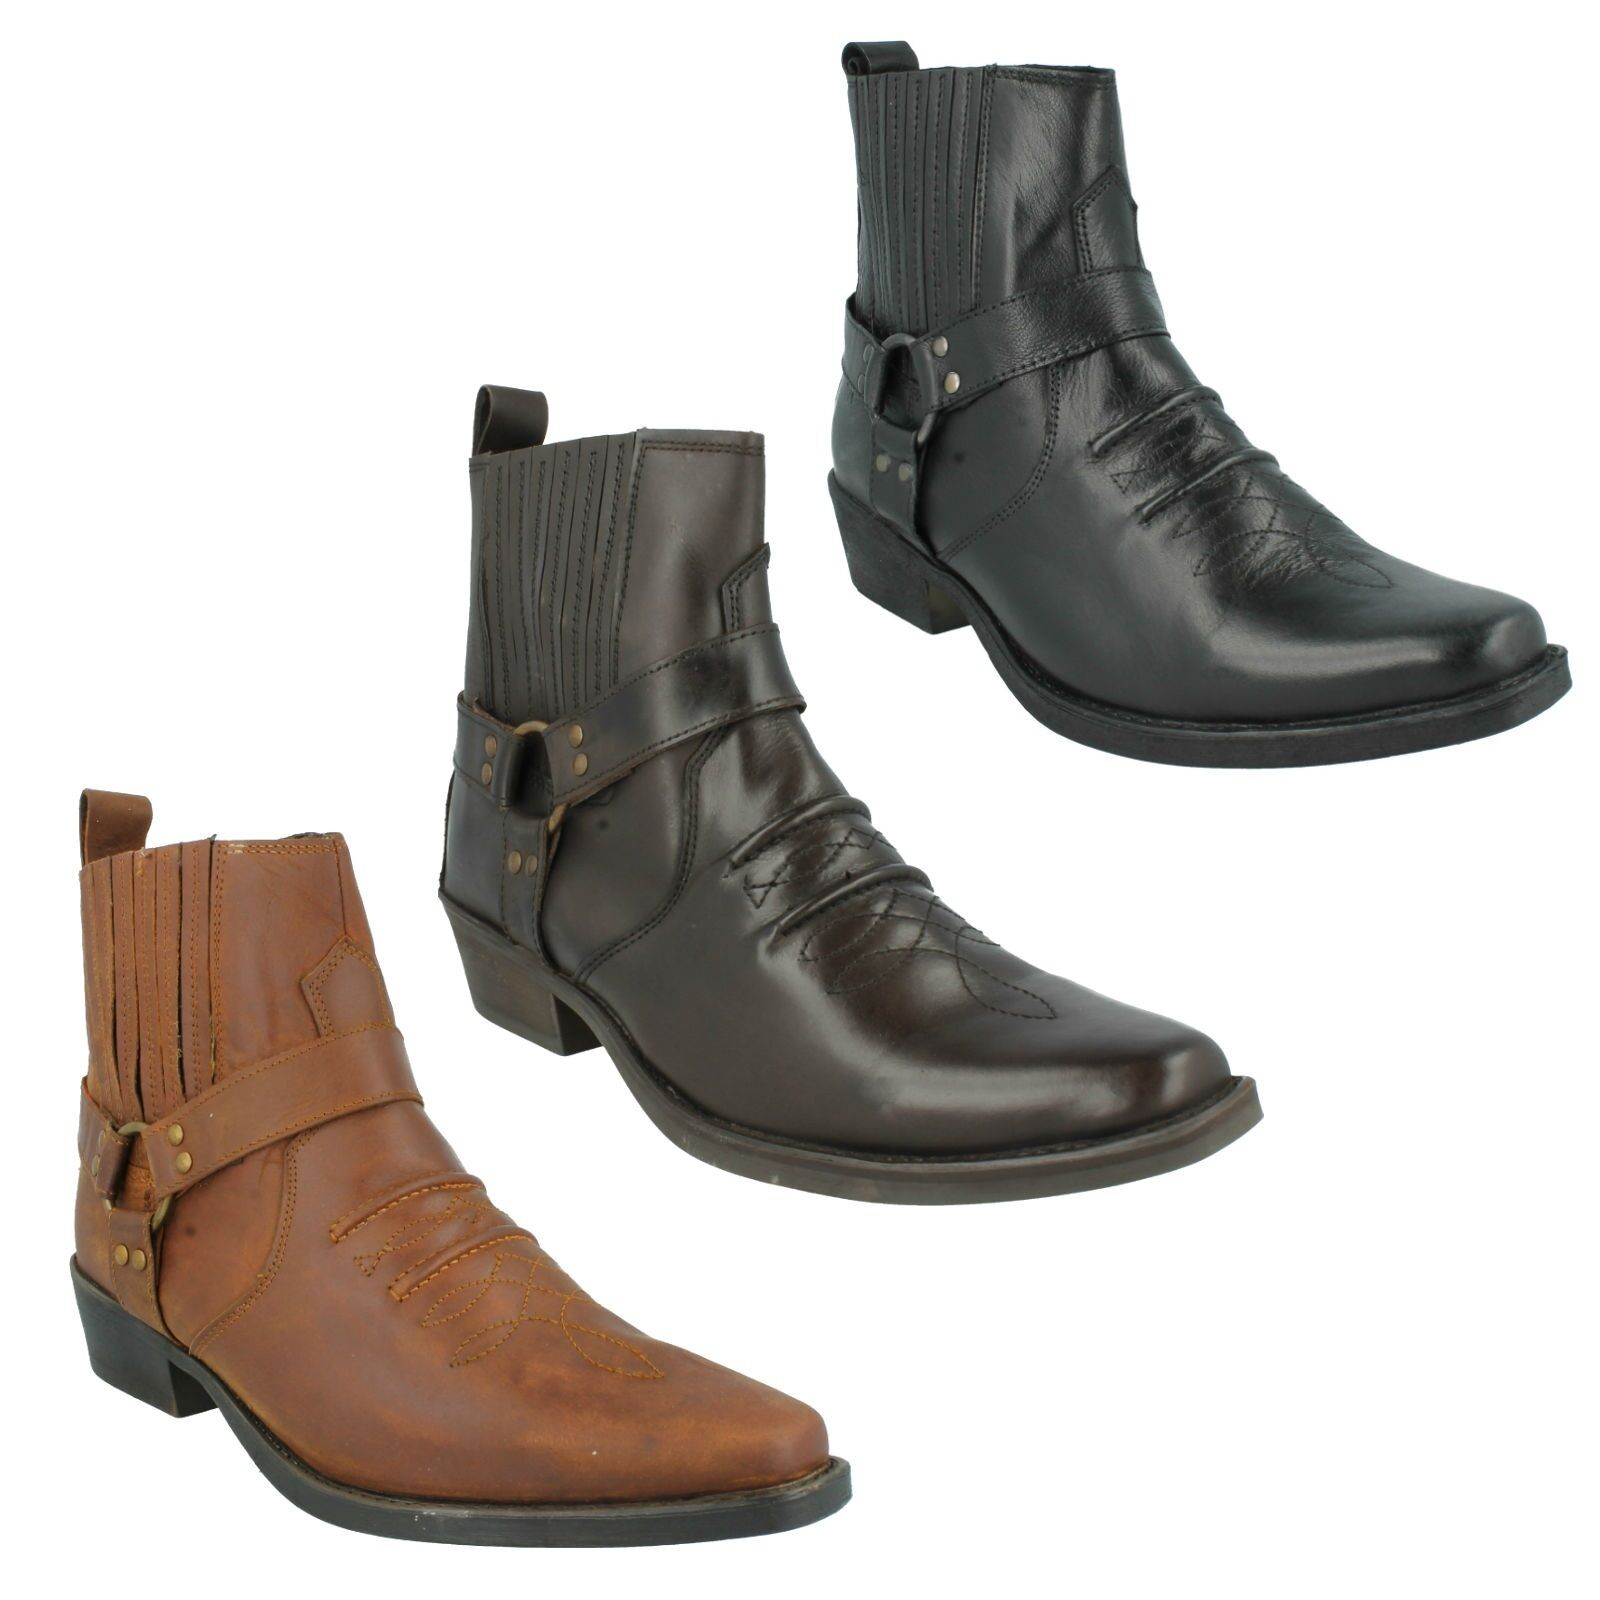 Hombre A3003 LEATHER LOW HEEL RING ANKLE STRAP SIDE GUSSET COWBOY ANKLE RING botas MAVERICK 3e0469